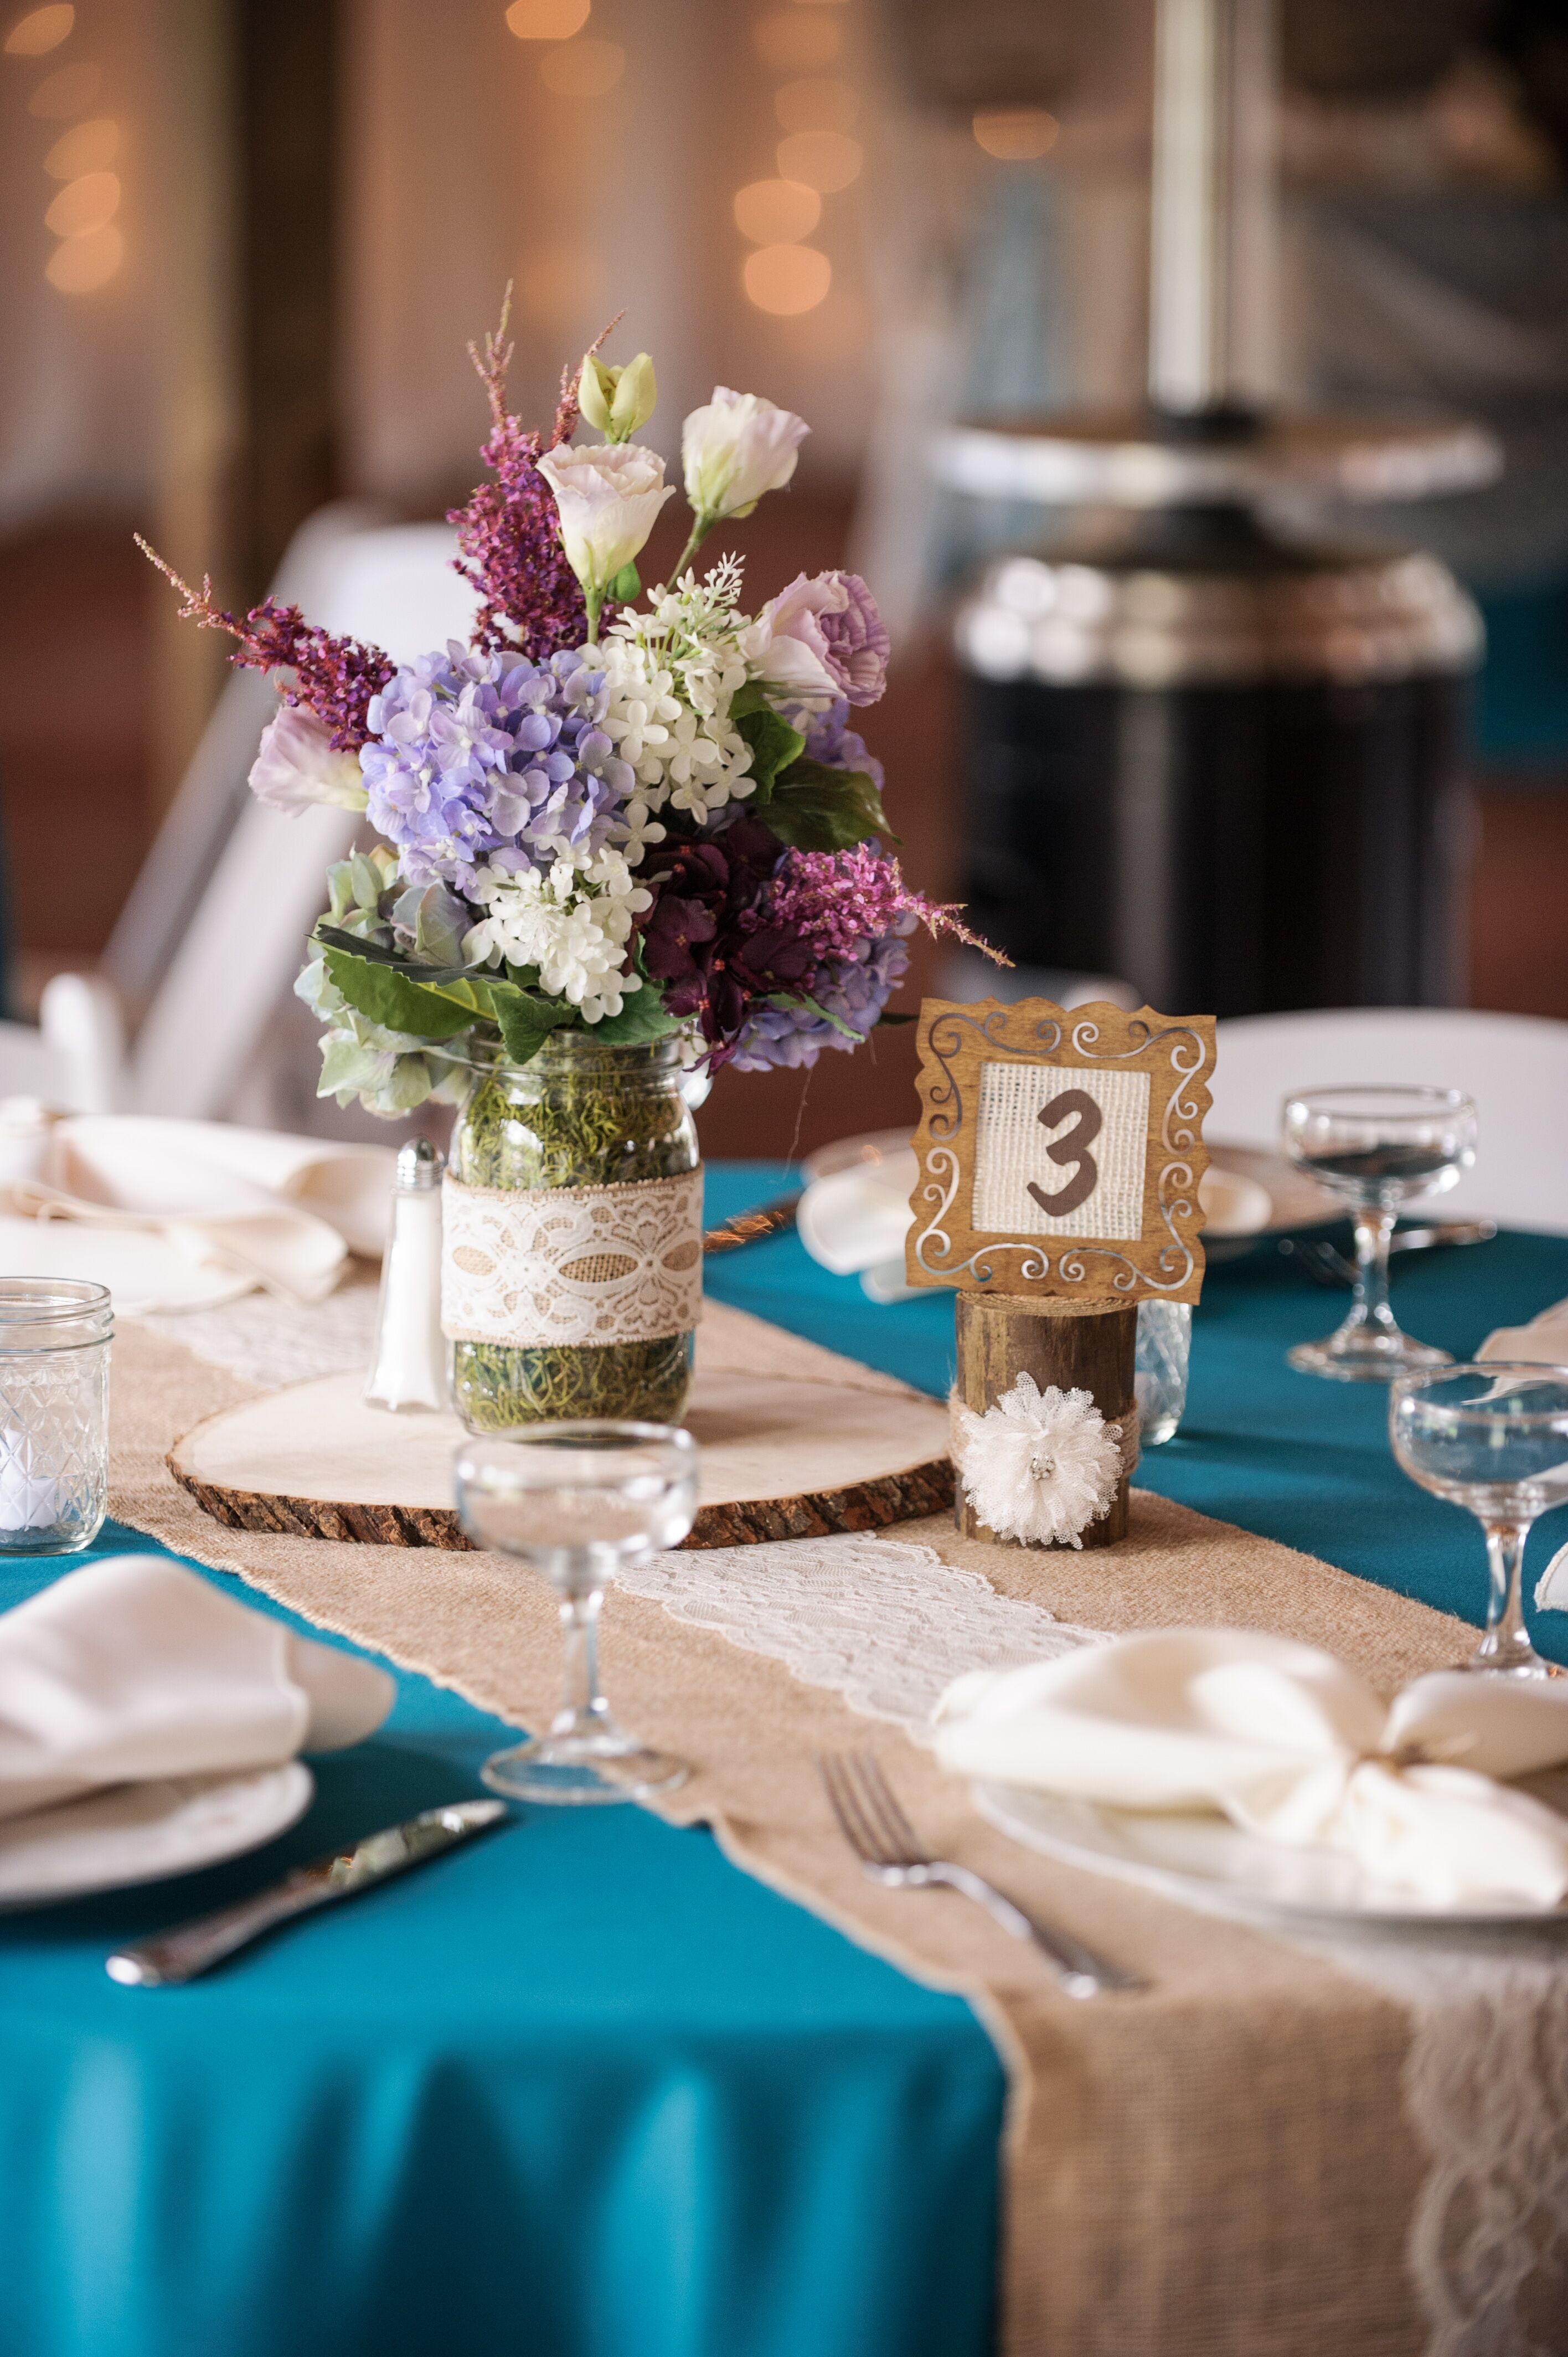 Mason jar centerpiece with purple delphiniums